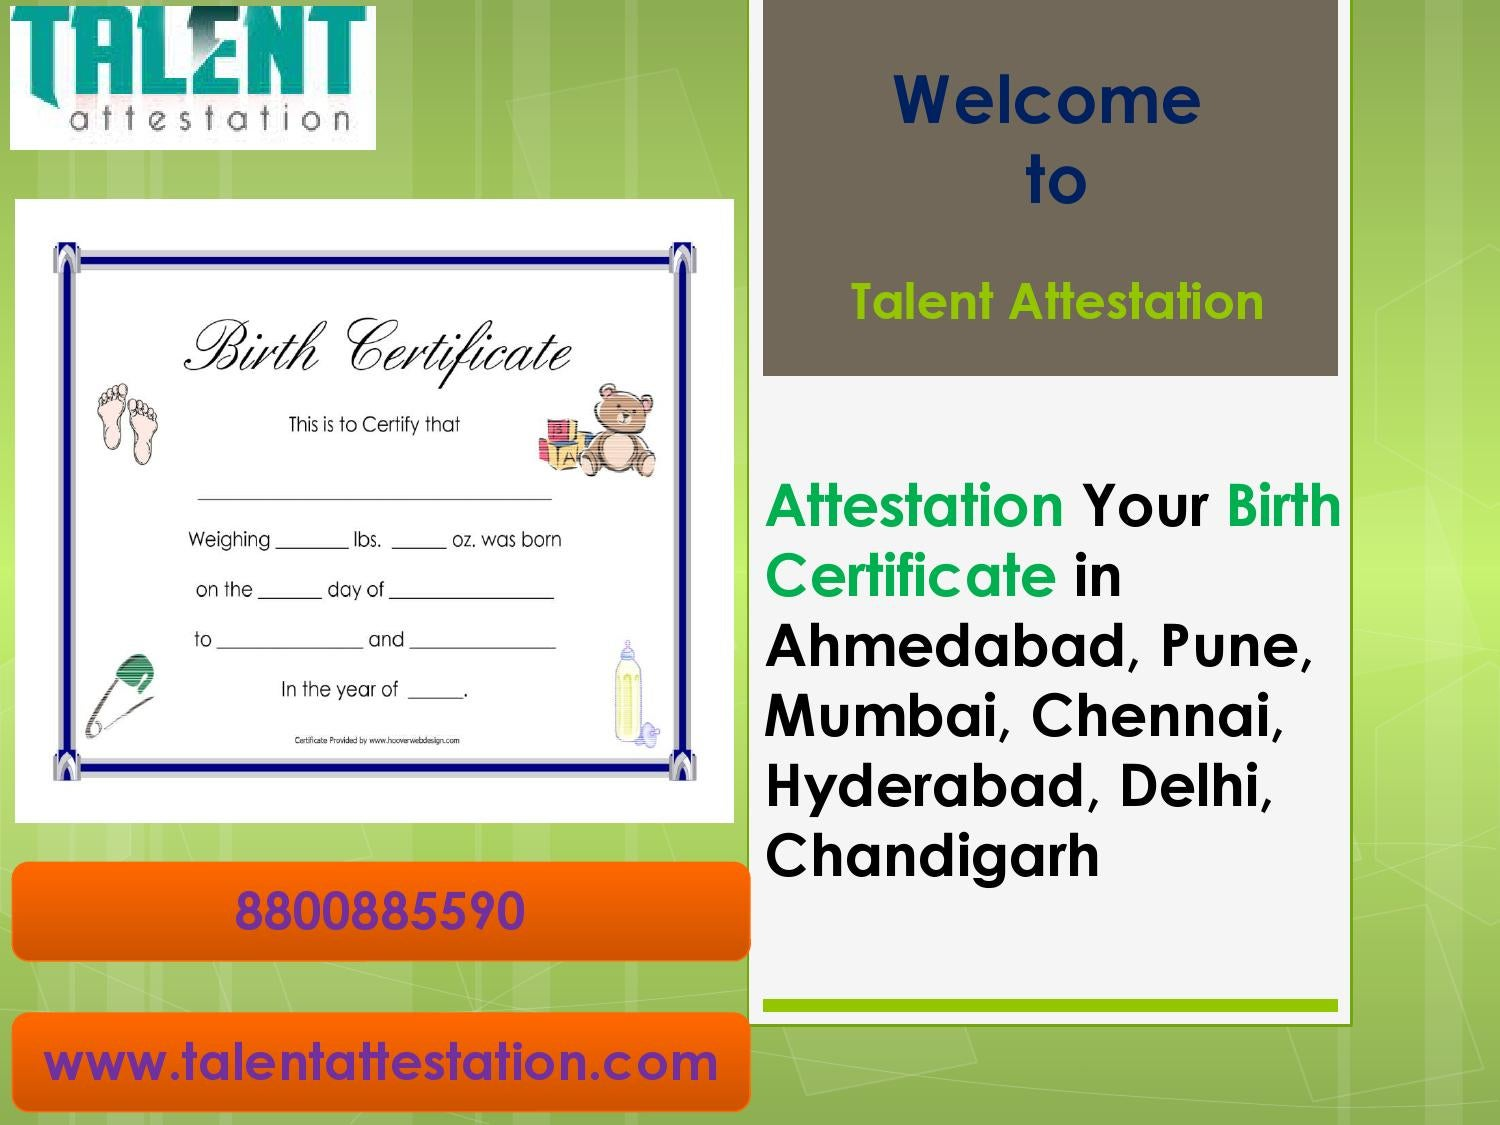 Attestation Your Birth Certificate In Ahmedabad Pune Mumbai